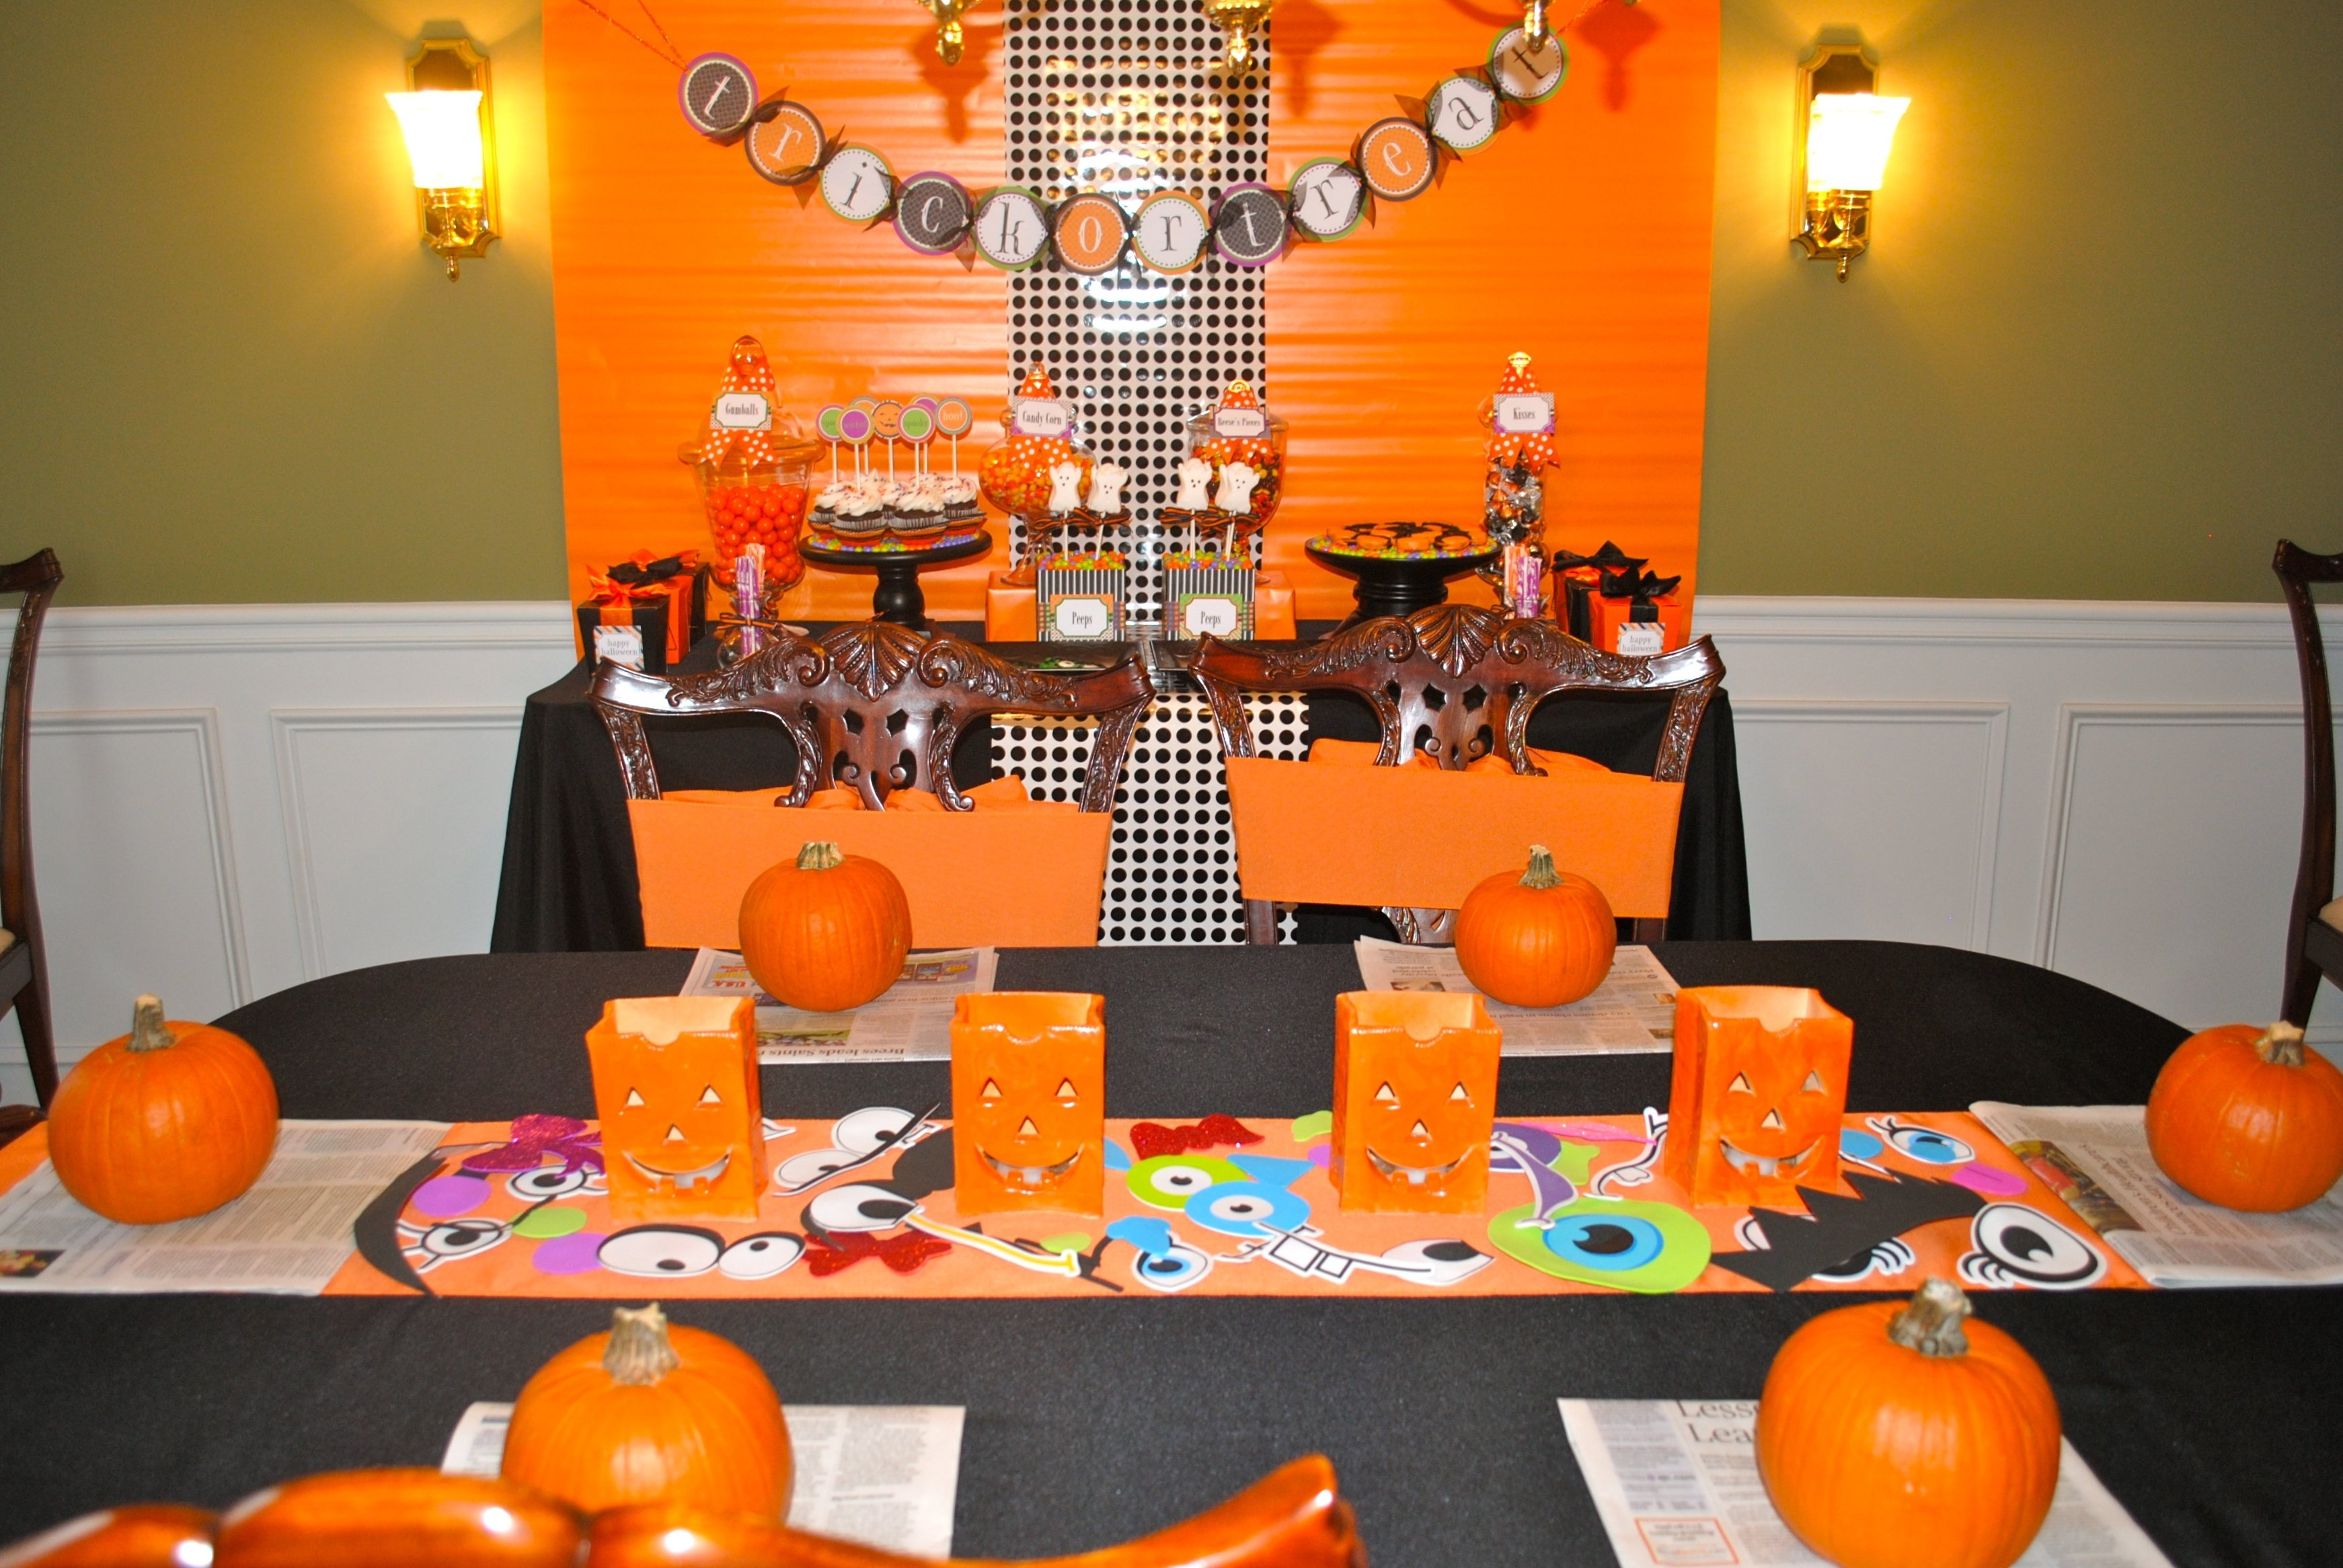 10 Trendy Halloween Party Ideas For Adults 2020 - photo#21